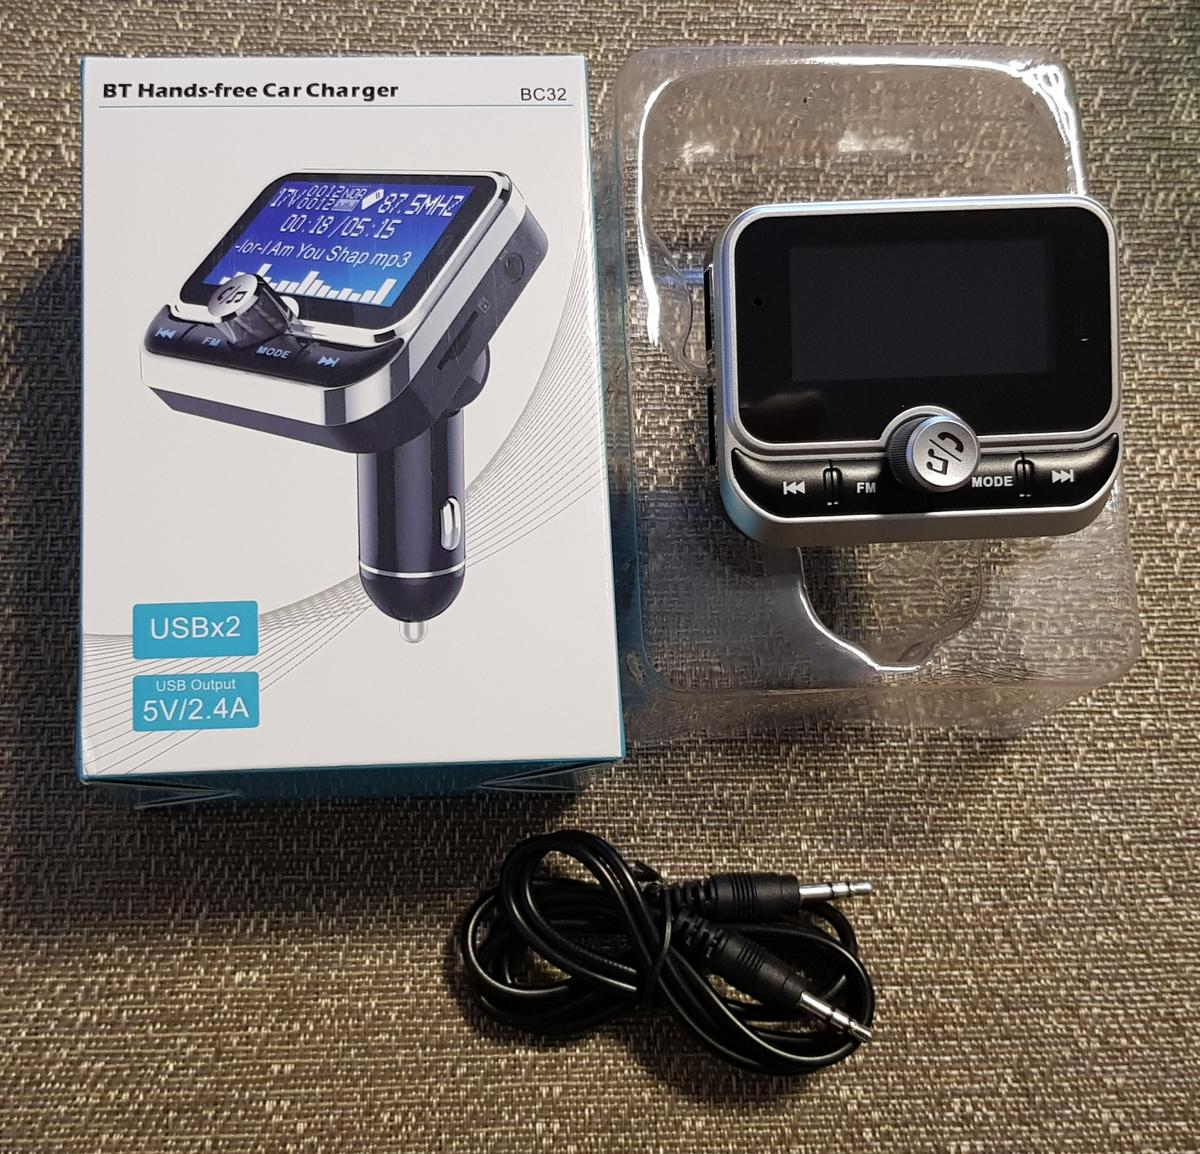 Bluetooth FM Transmitter in GU2 Guildford for £15 00 for